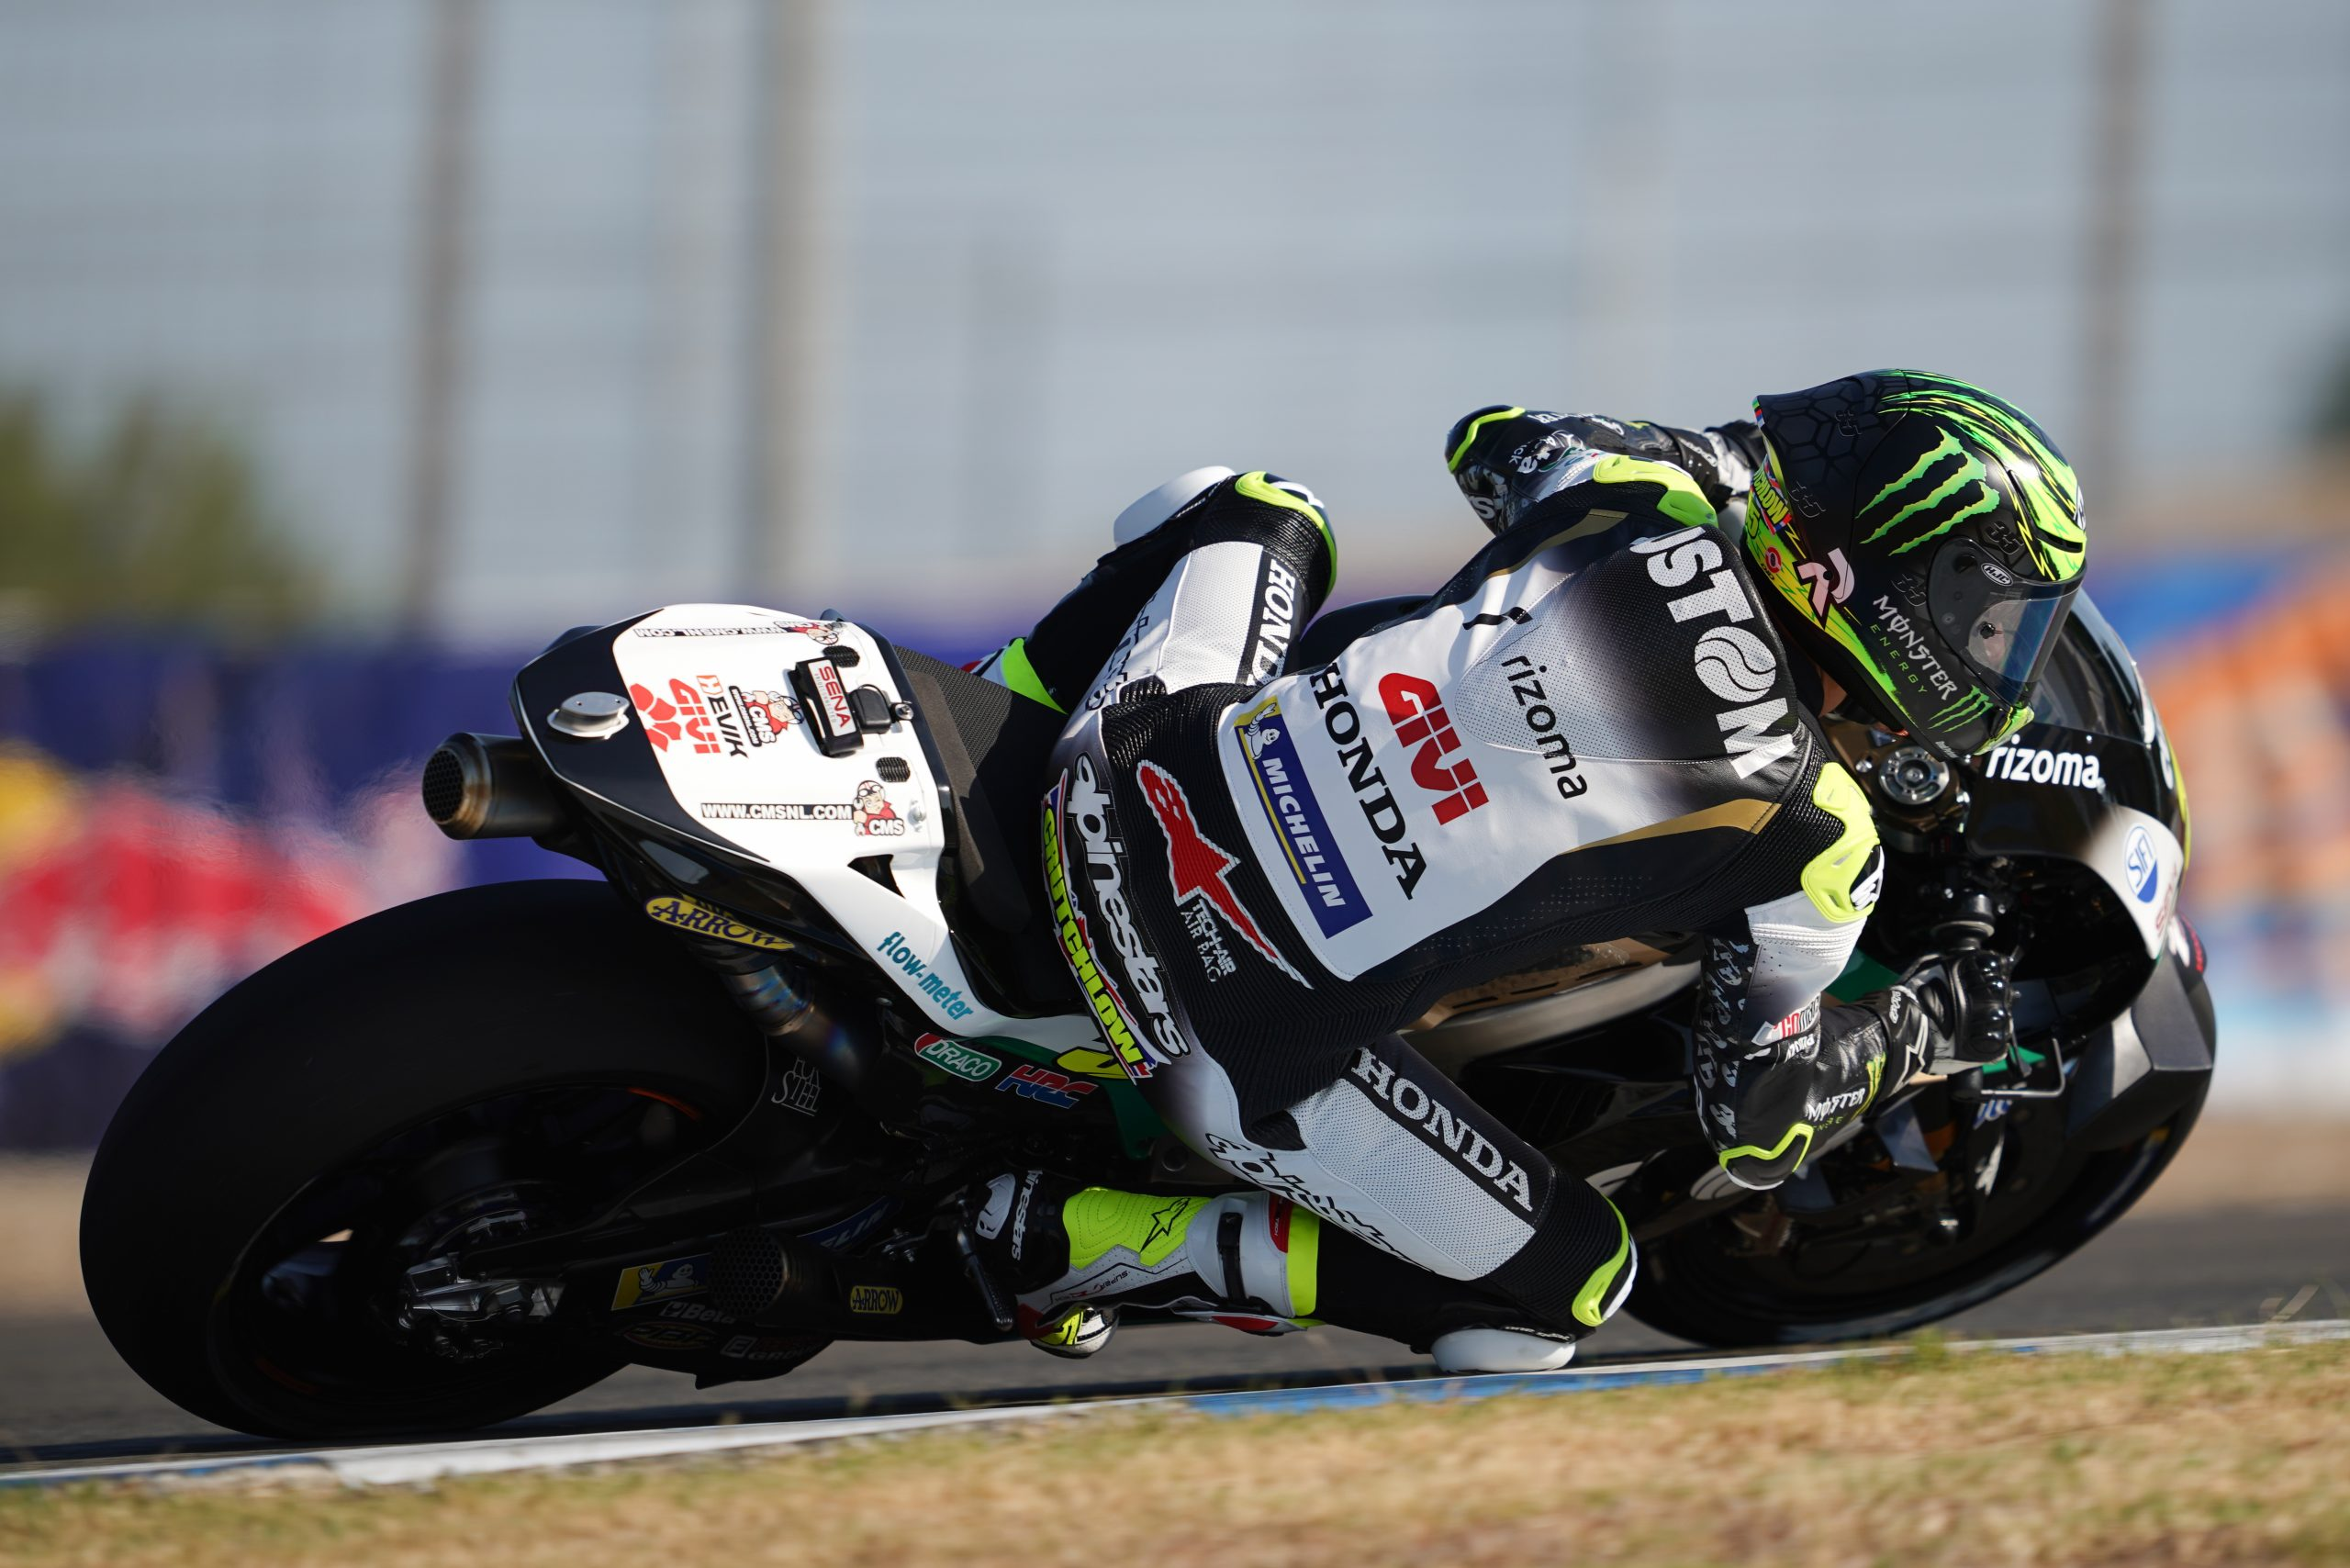 Crutchlow battles on to 5th row in Jerez